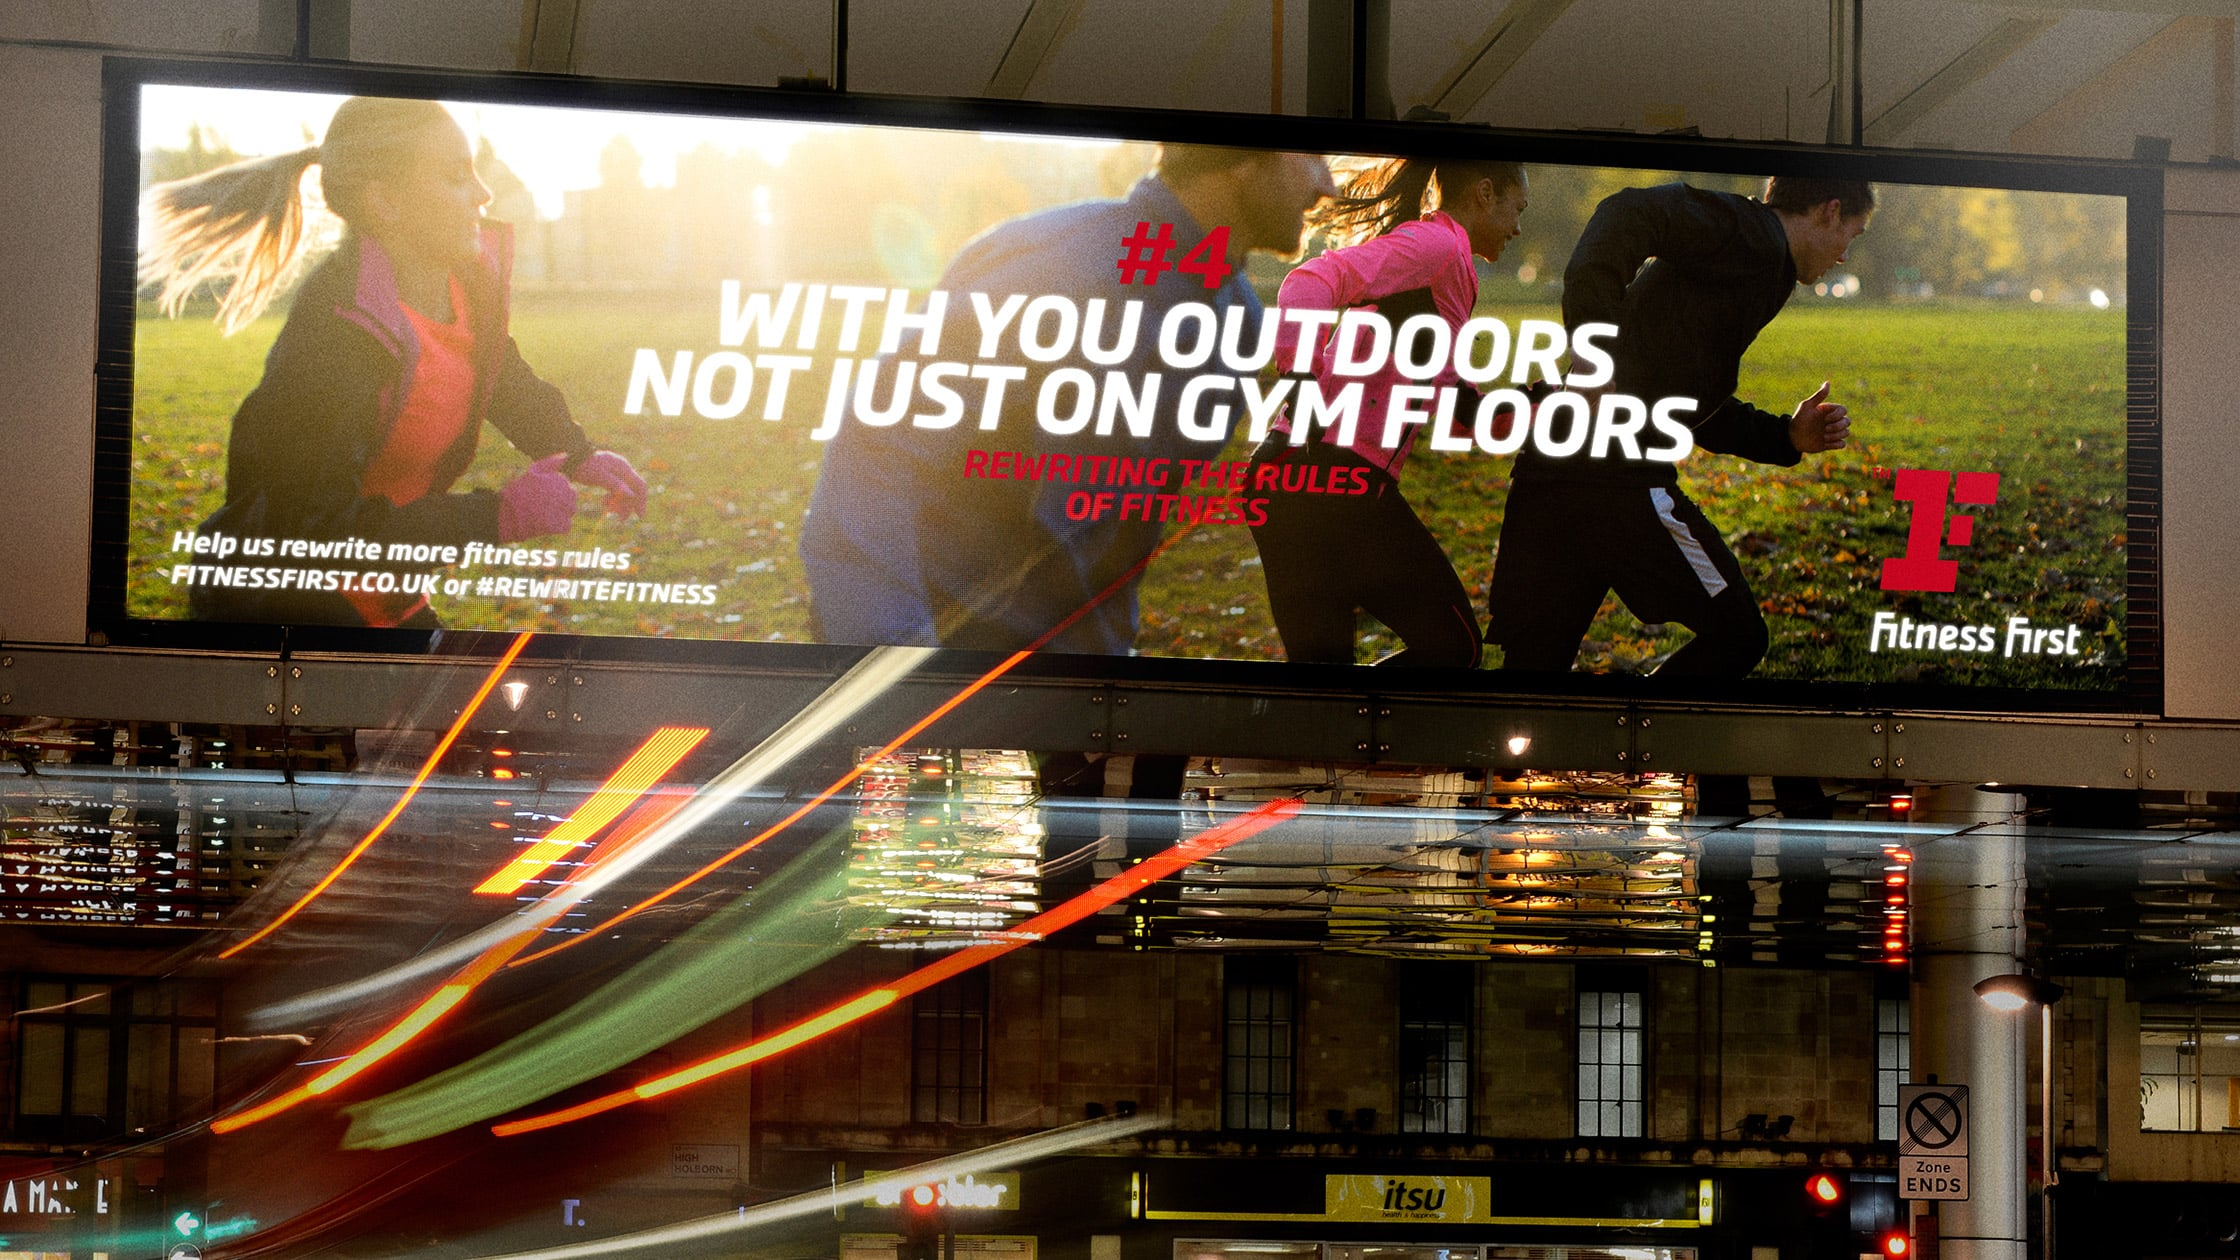 Fitness-First-Campaign_2.jpg